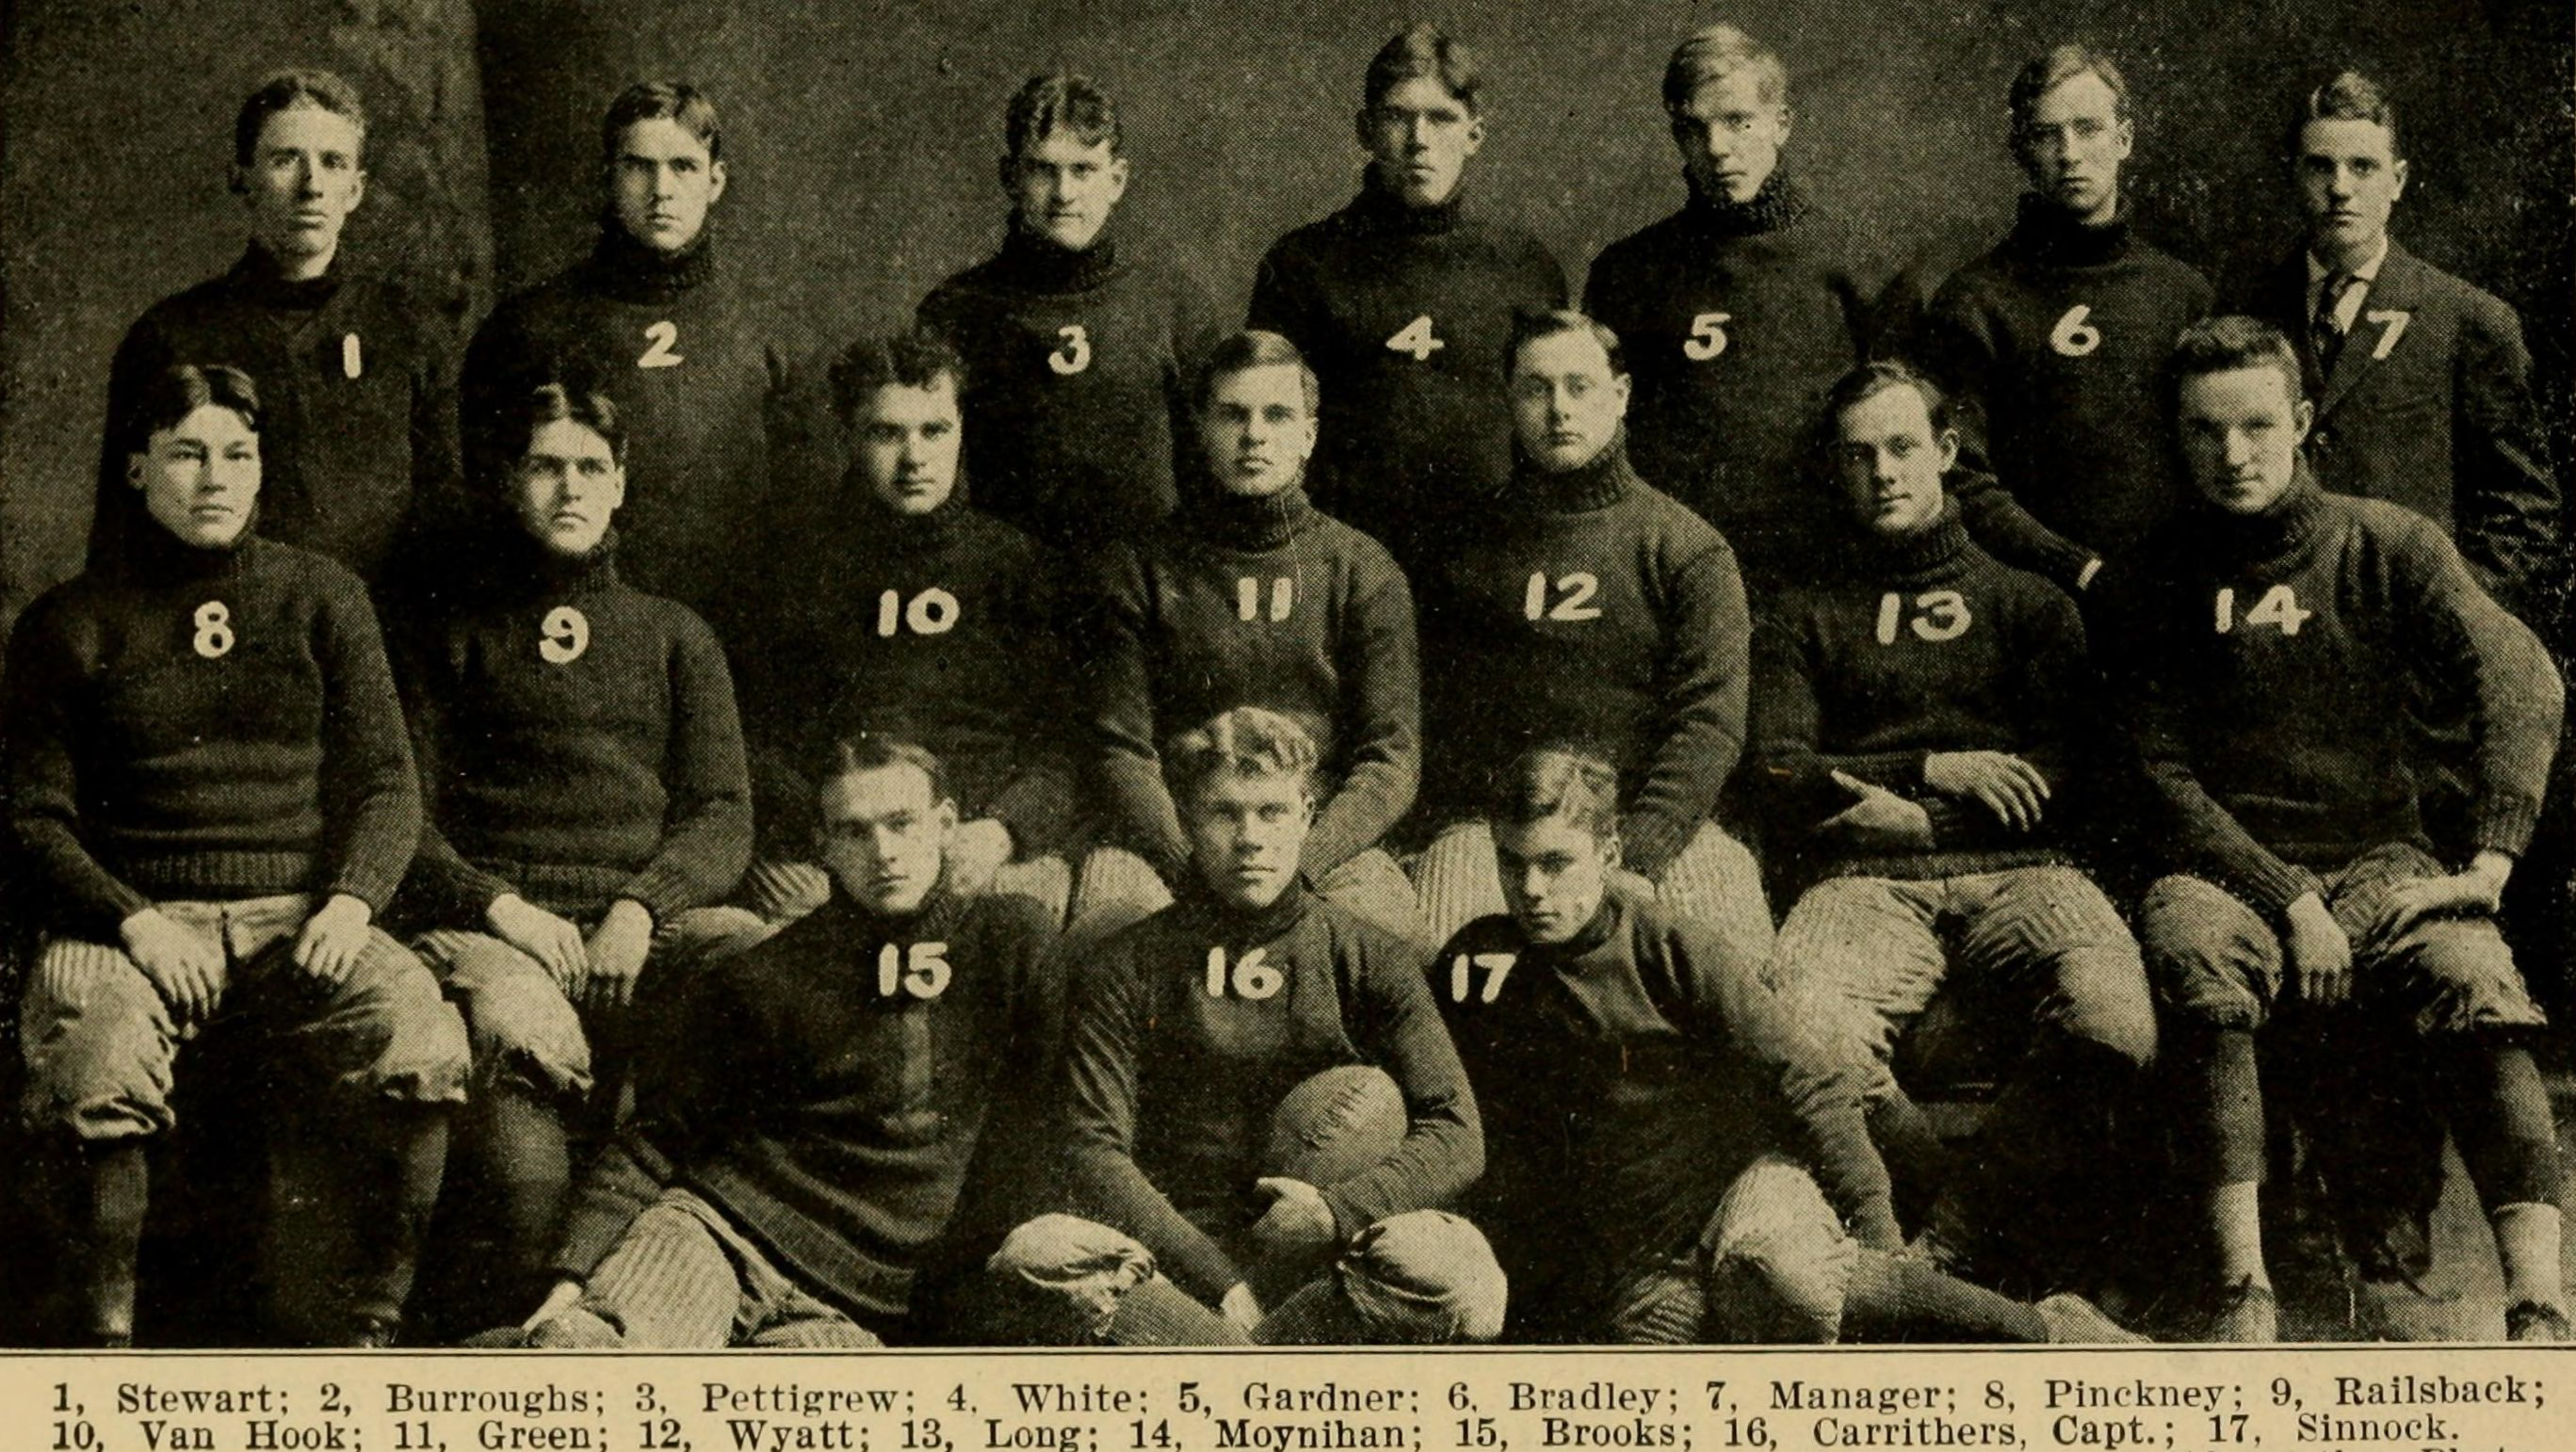 In 1907 the newly formed NCAA published its first rule book for football, which included a portrait of the University of Illinois football team.